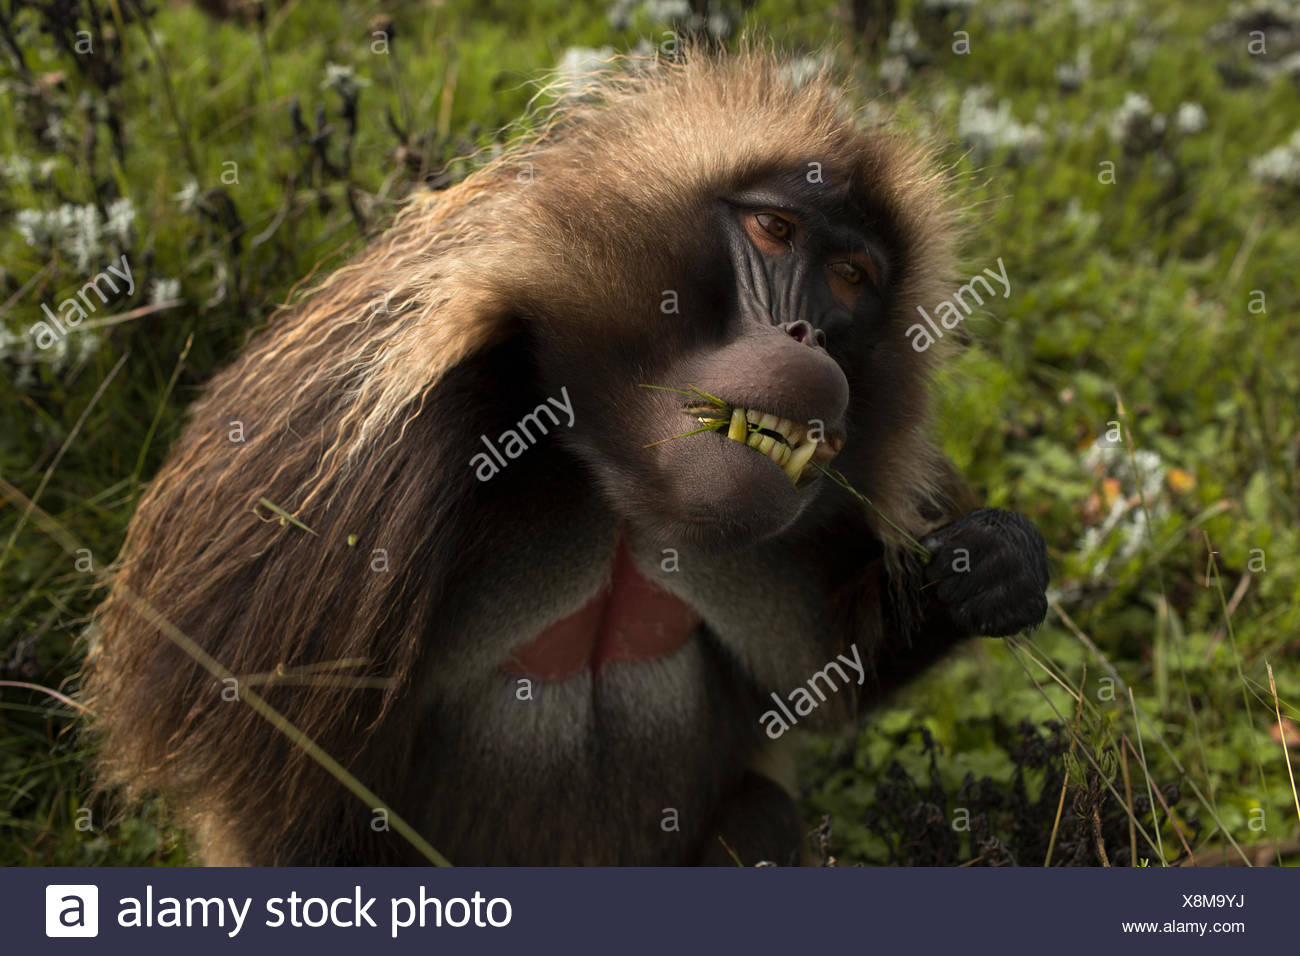 An adult male gelada uses his hand to pull grass through his teeth to remove the seed pods at the top. - Stock Image